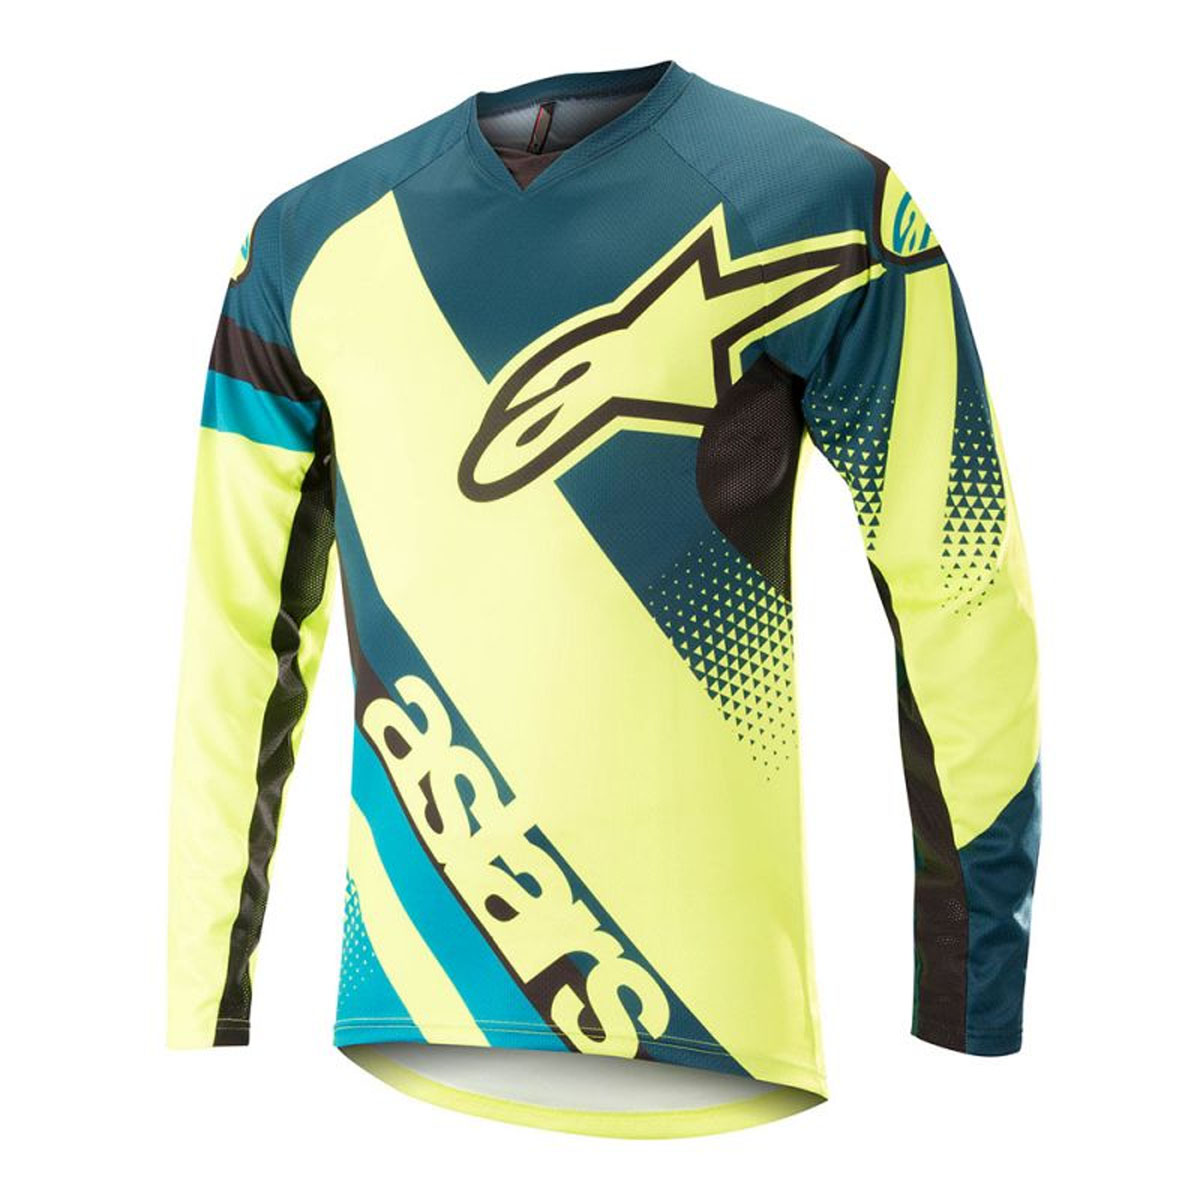 Alpinestars Men s Racer Long Sleeve Cycling Jersey - Petrol Yellow  Fluorescent 7cce78725